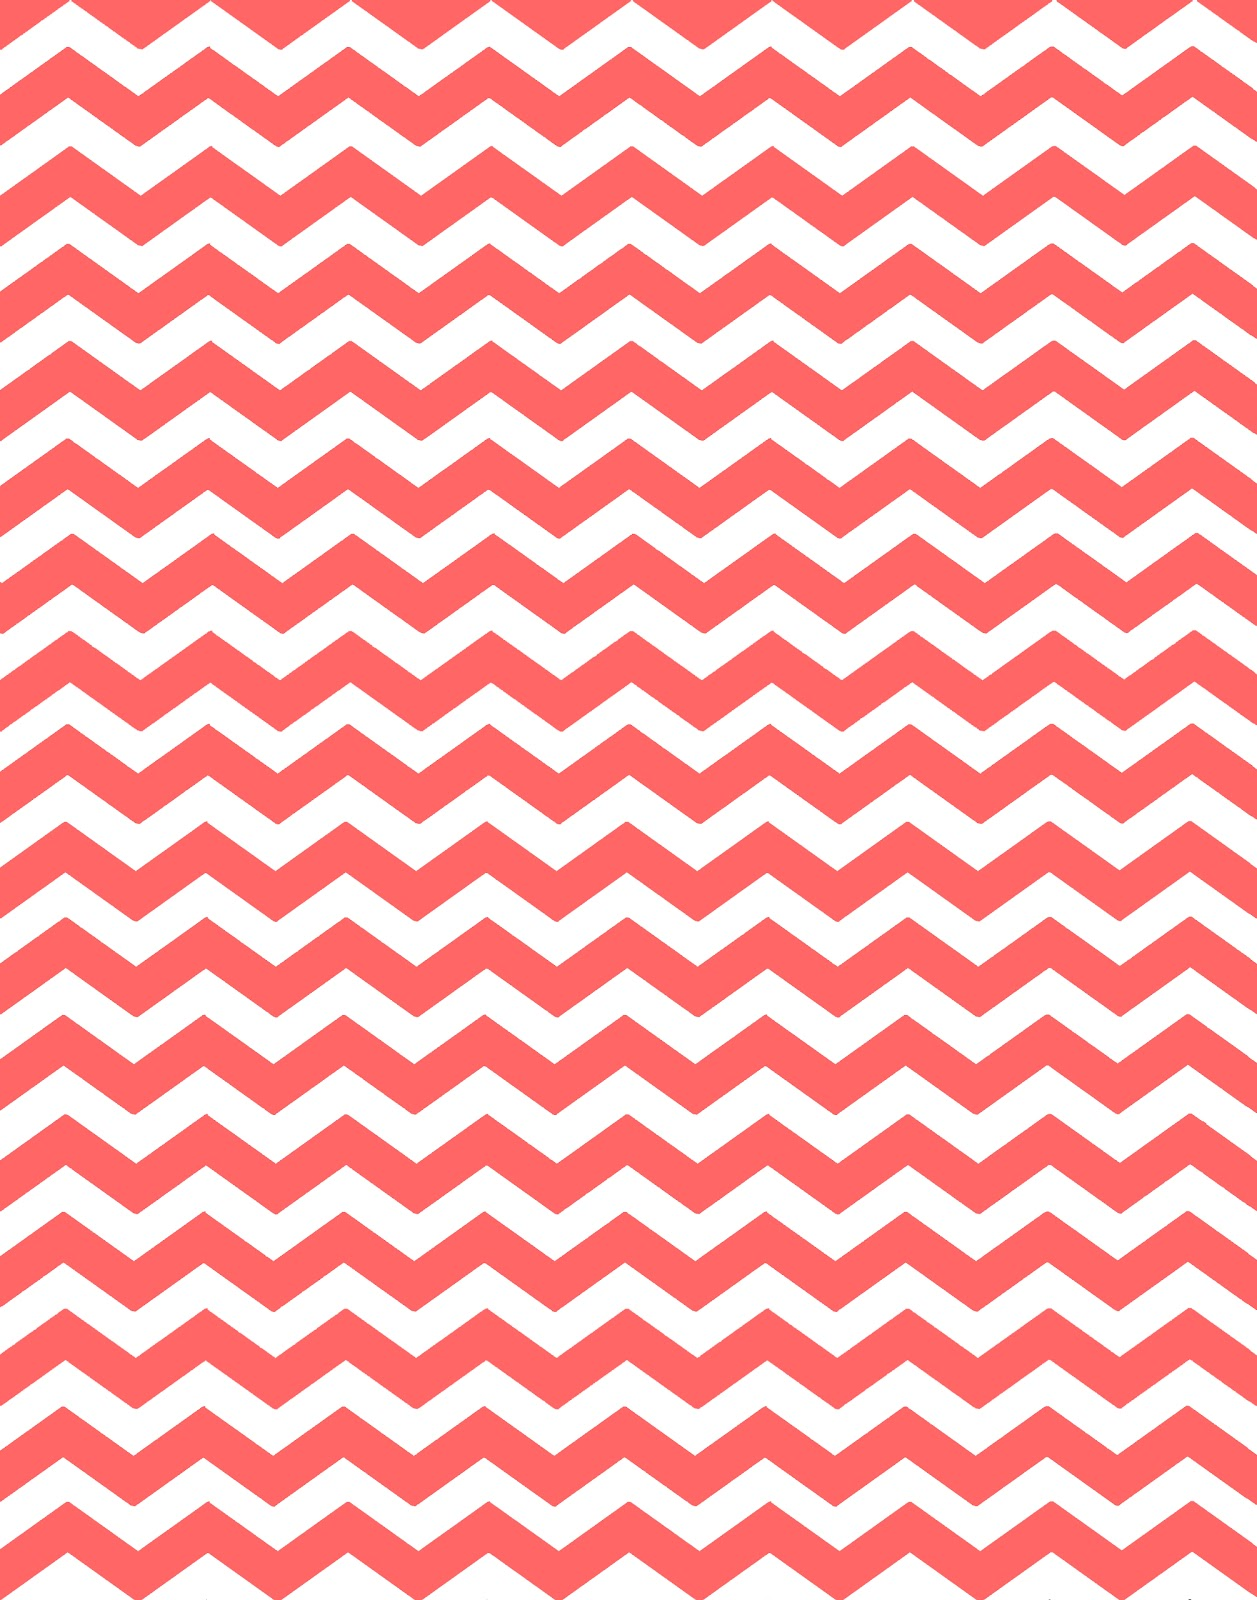 Doodlecraft: 16 New Colors Chevron background patterns!